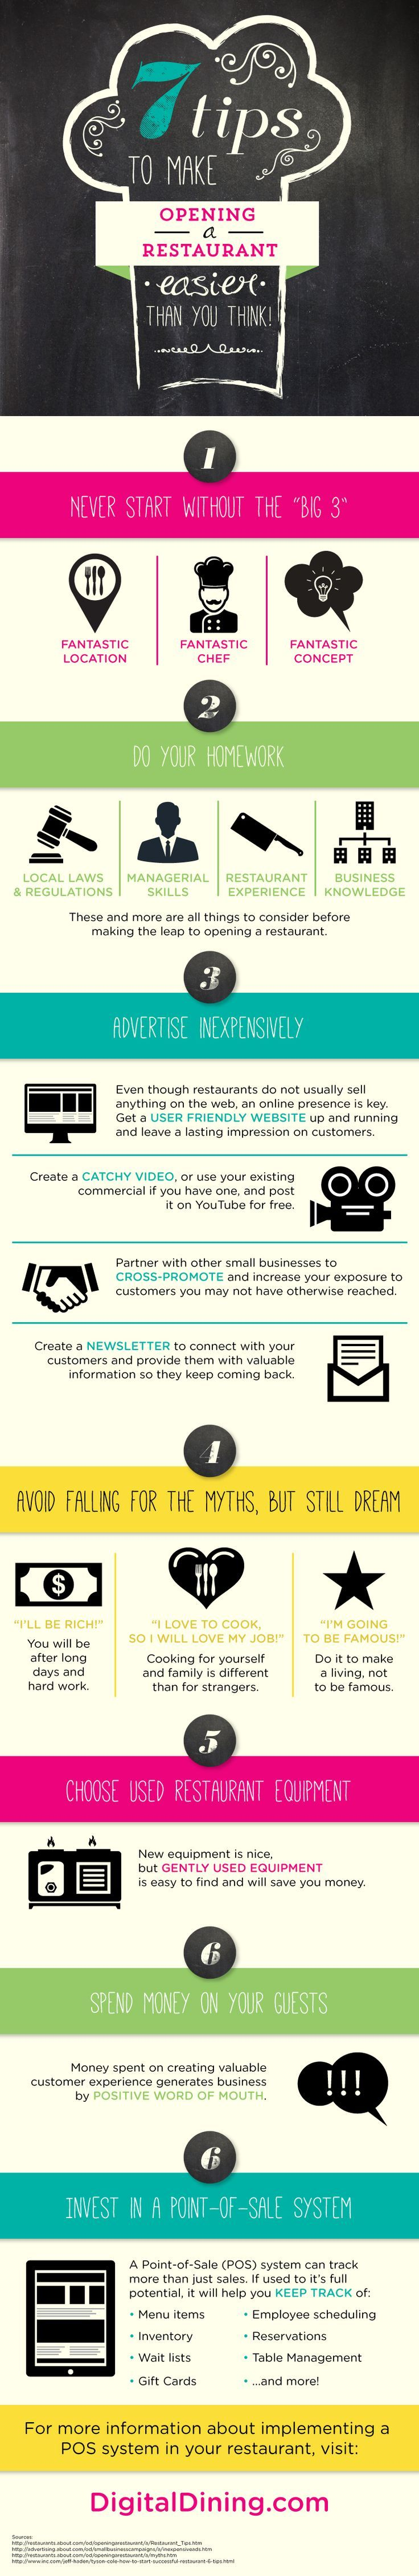 7 Tips to Make Opening a Restaurant Easier #infographic #Restaurant #Opening #Hotel (Business Card Restaurant Chefs)